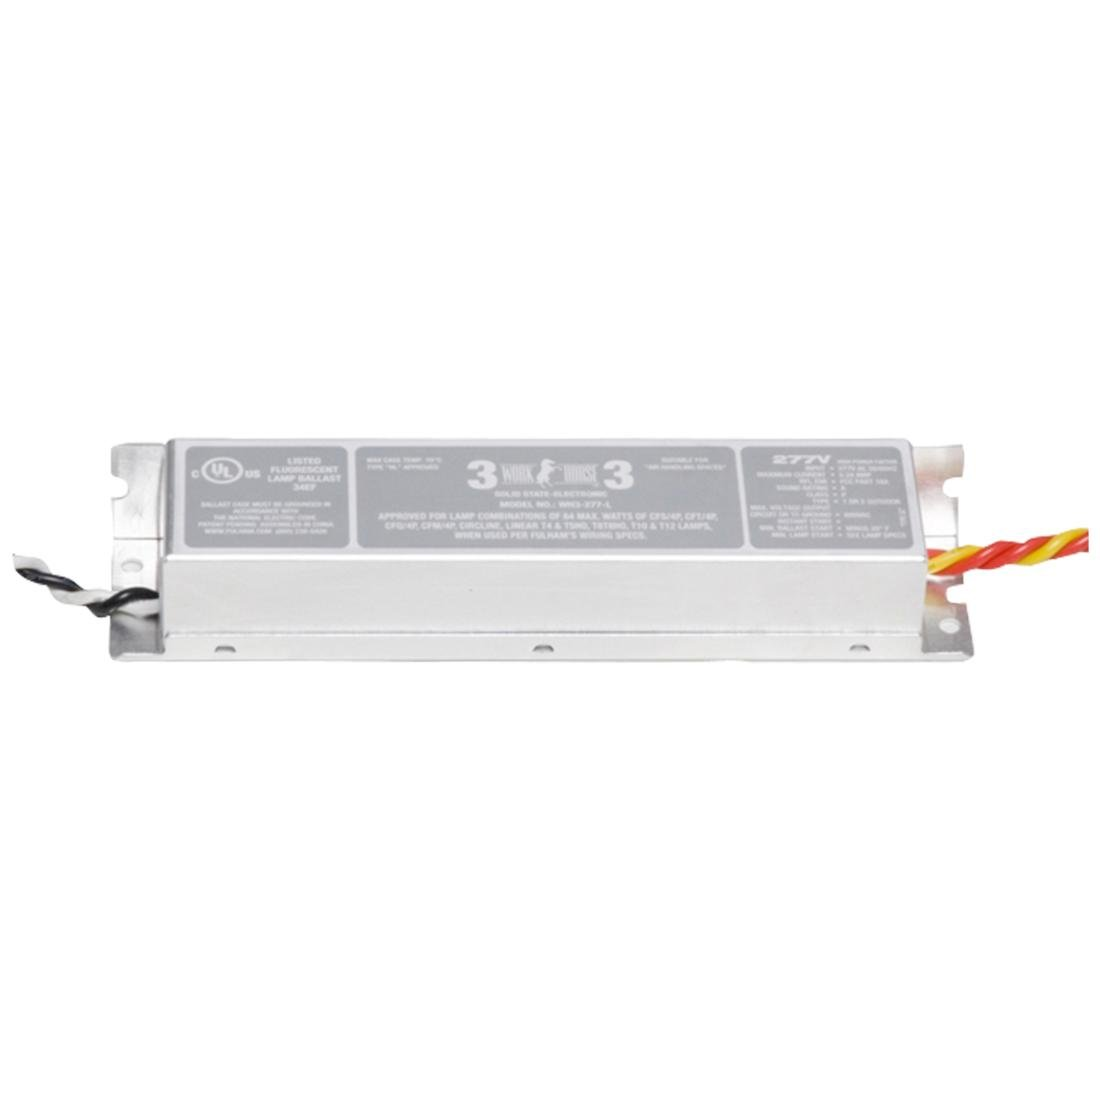 Instant Start Electronic FL WorkHorse Ballast for 1-3 64W Max Lamps Run at 277V (WH3-277-L)